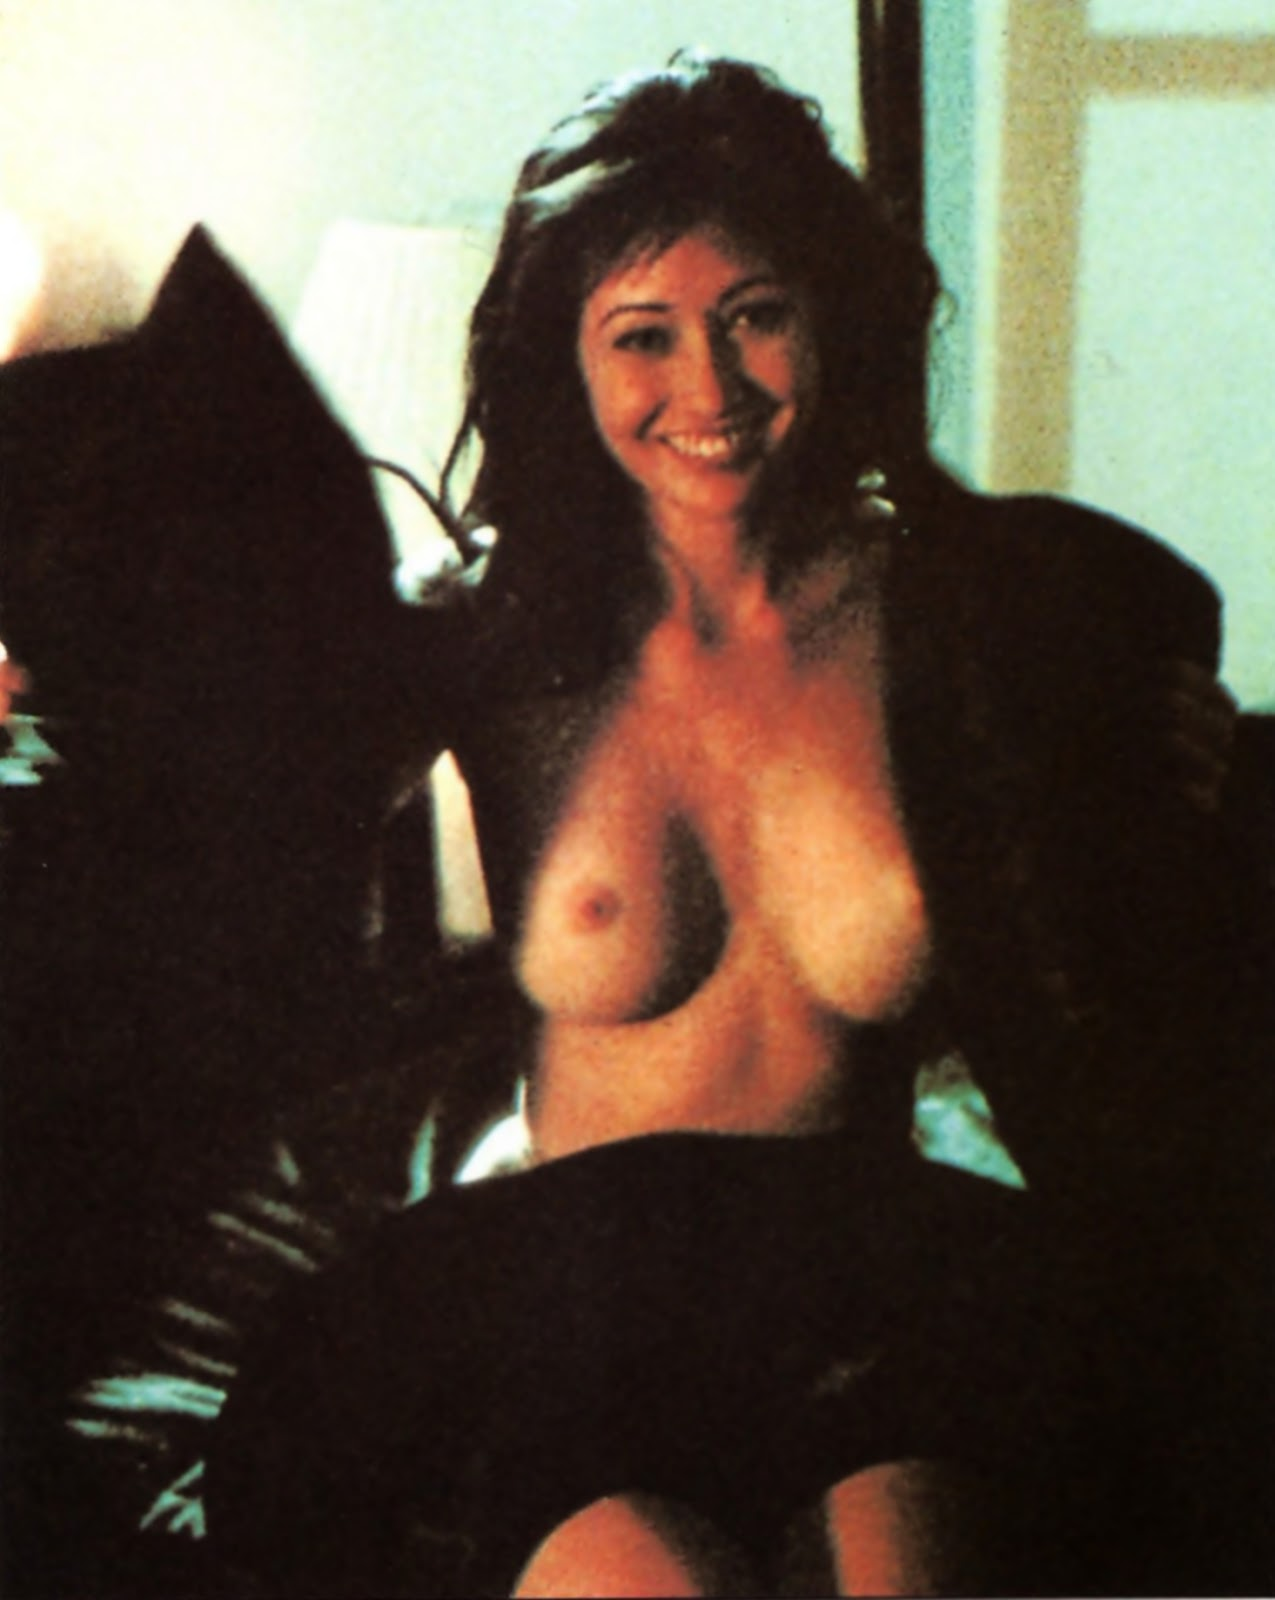 harwood-naked-shannen-doherty-nude-real-boobs-hard-dick